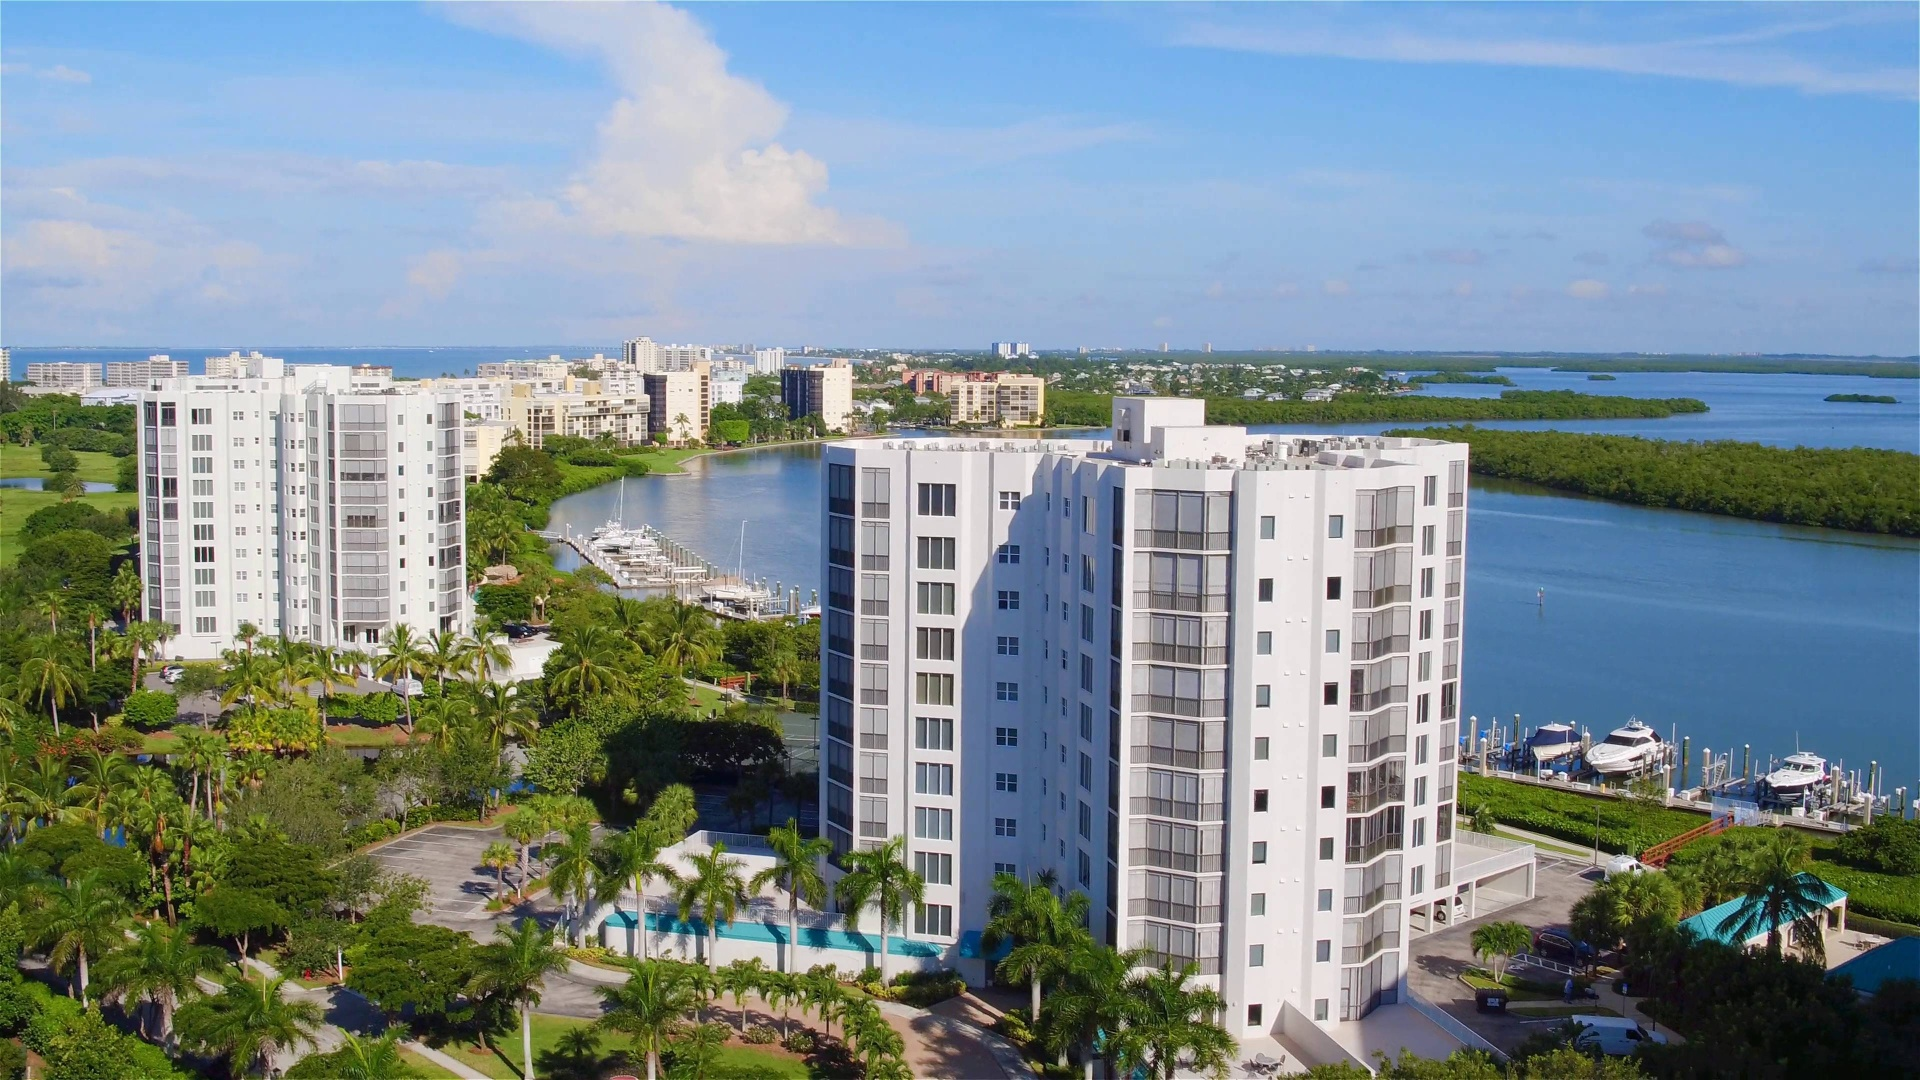 Wistia video thumbnail - Grandview at Bay Beach | Luxury Waterfront Home Florida